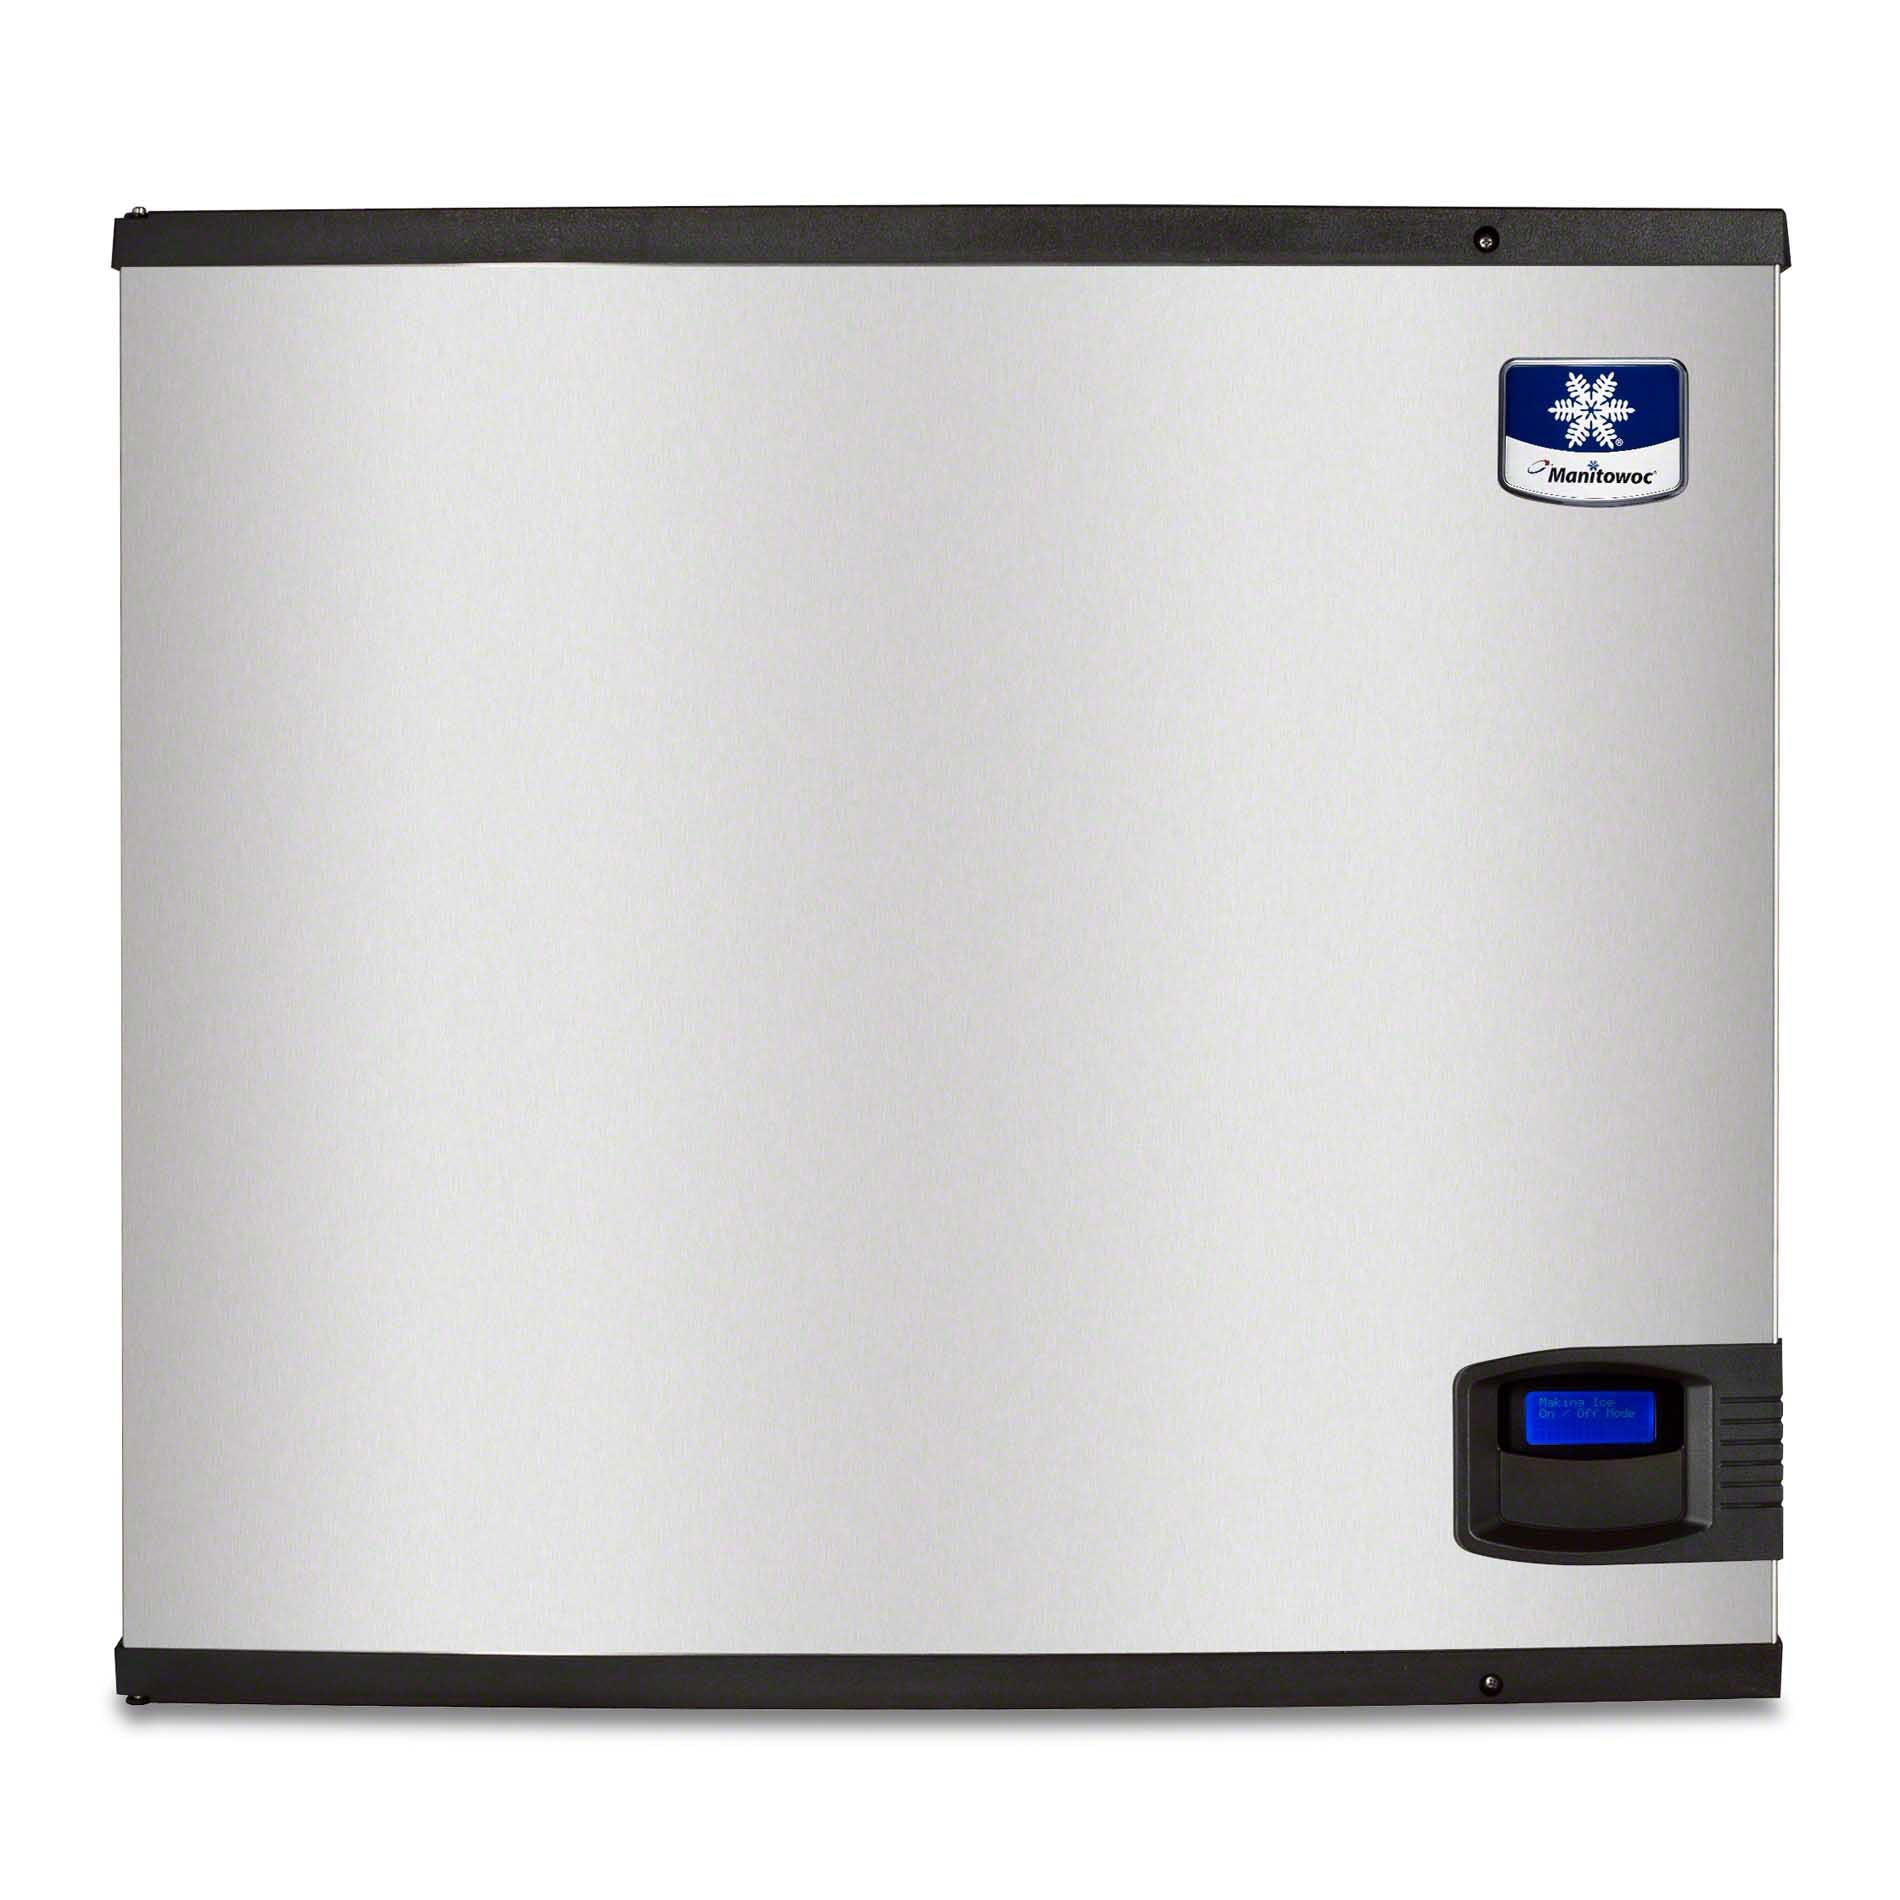 Manitowoc - IY-1004A 1010 lb Half Size Cube Ice Machine - Indigo Series - sold by Food Service Warehouse